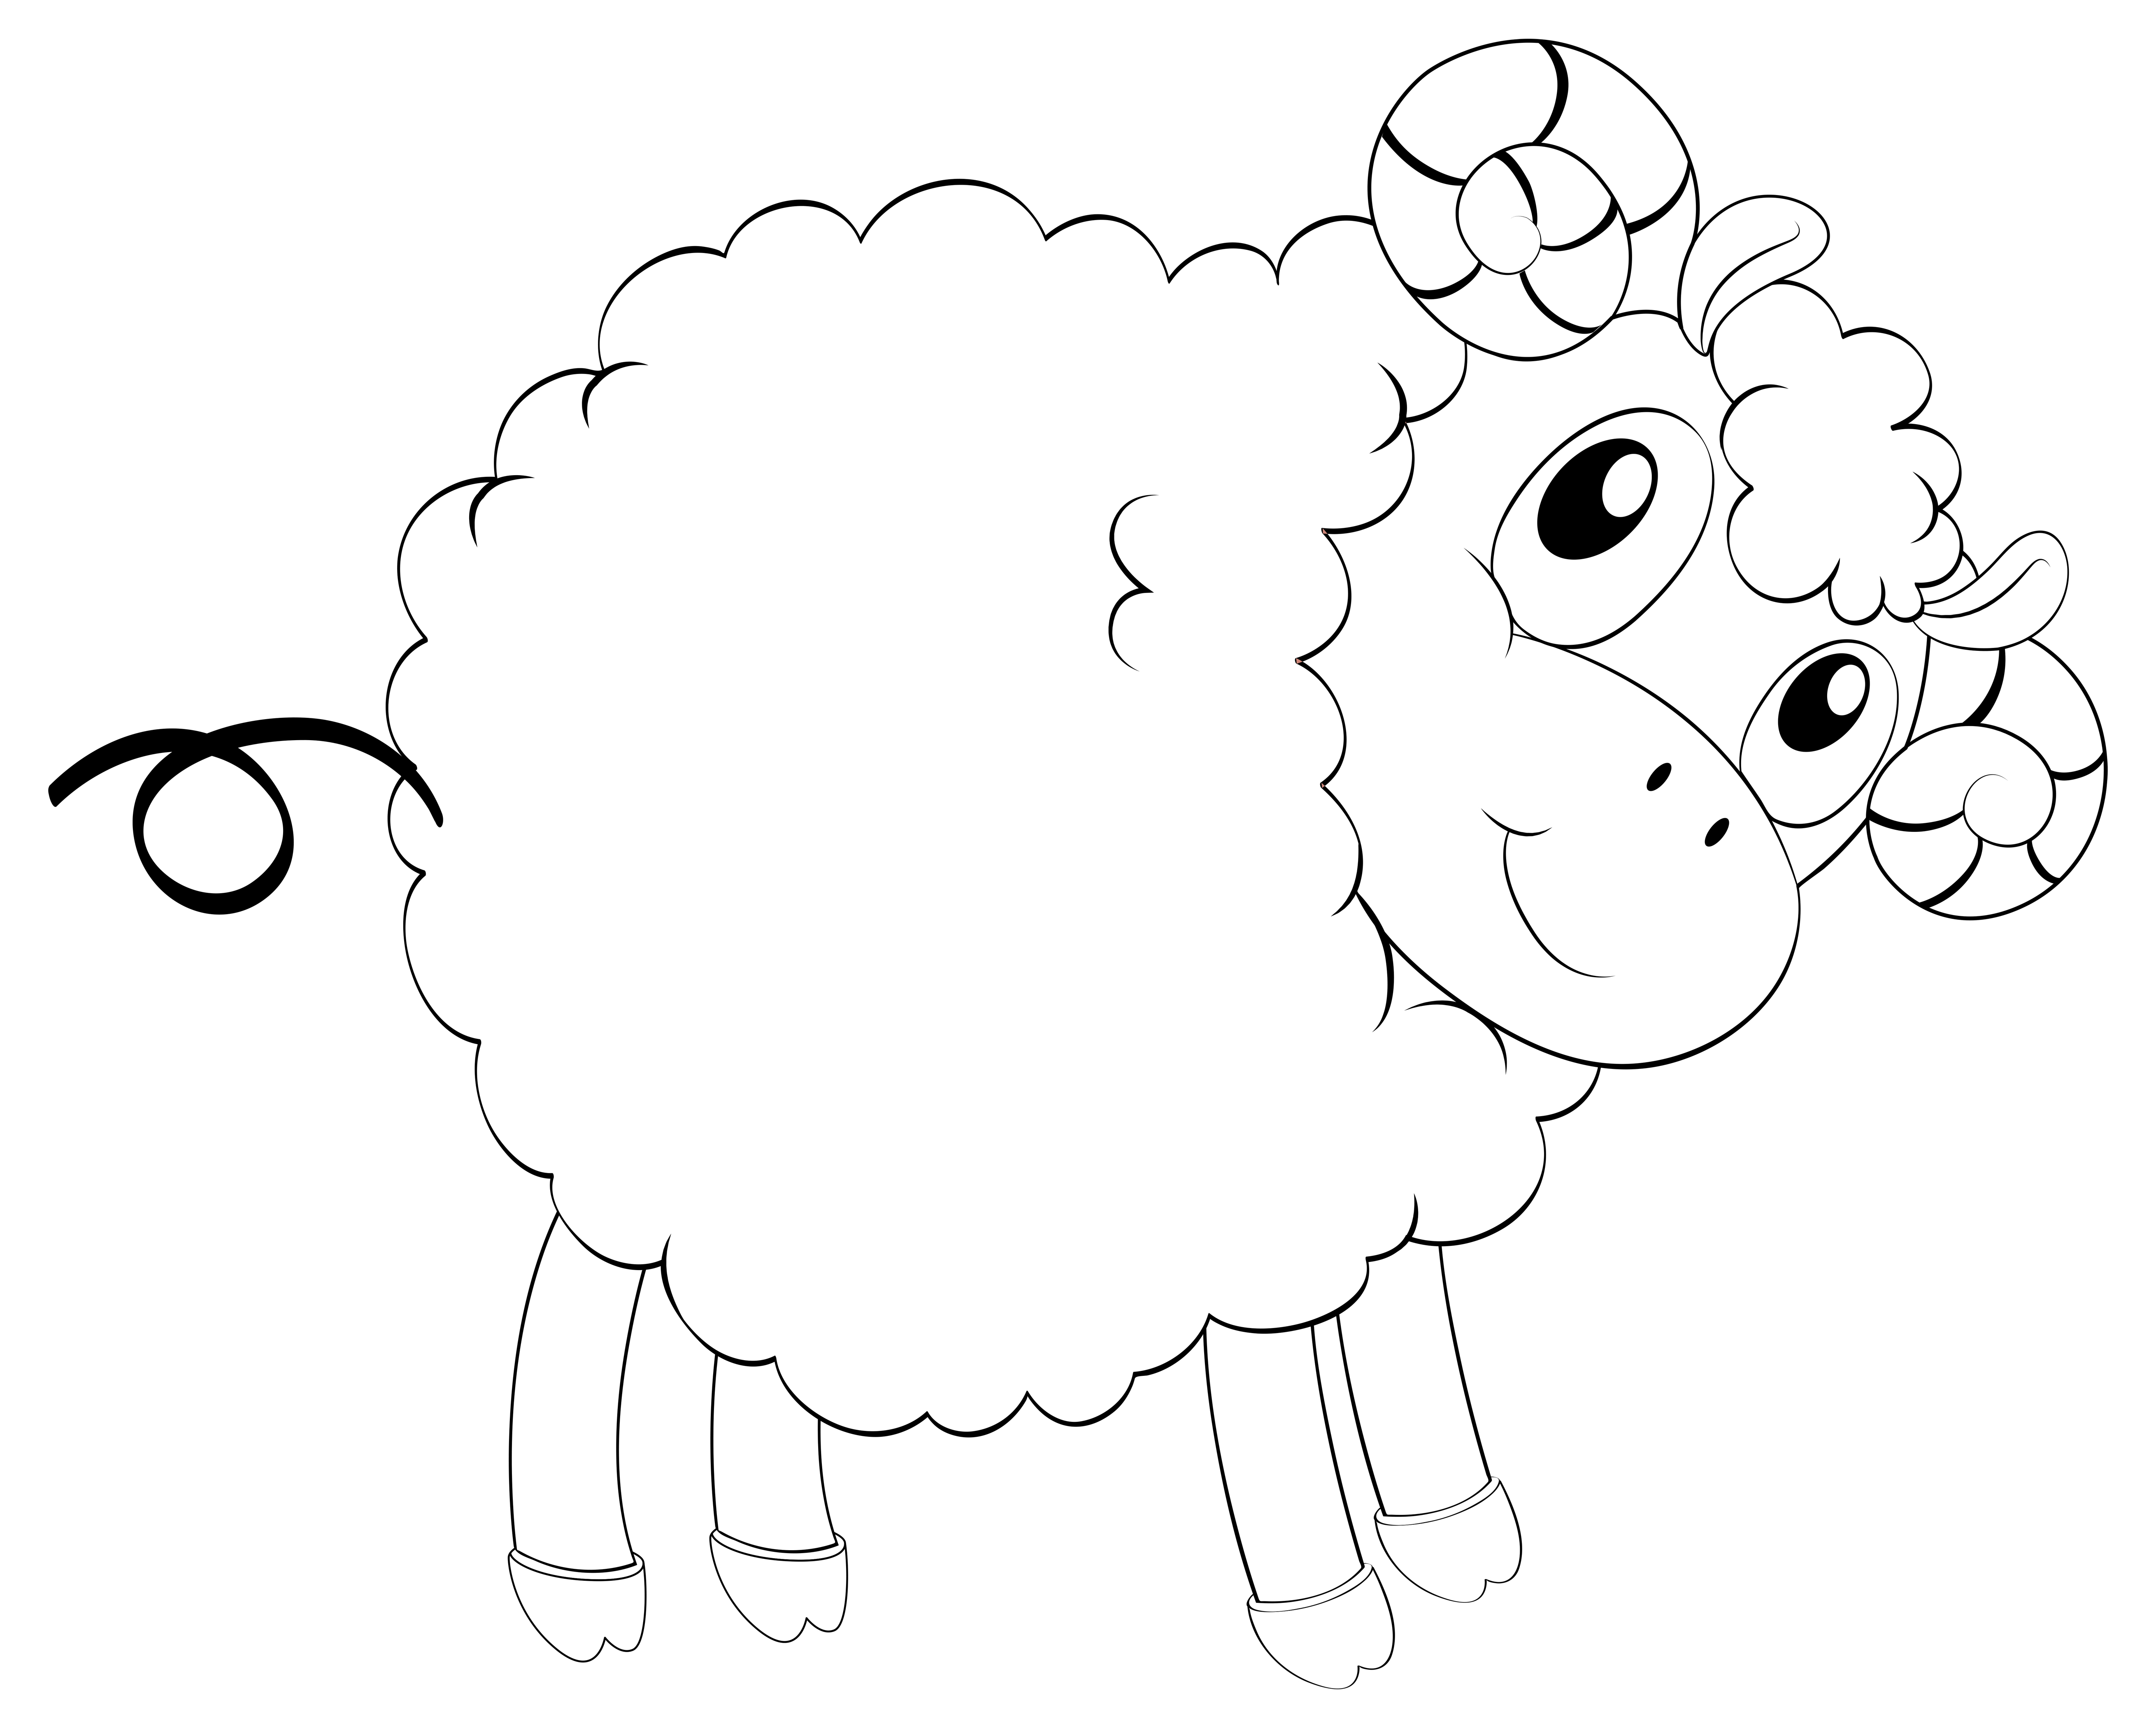 Animal outline for cute sheep - Download Free Vectors ...